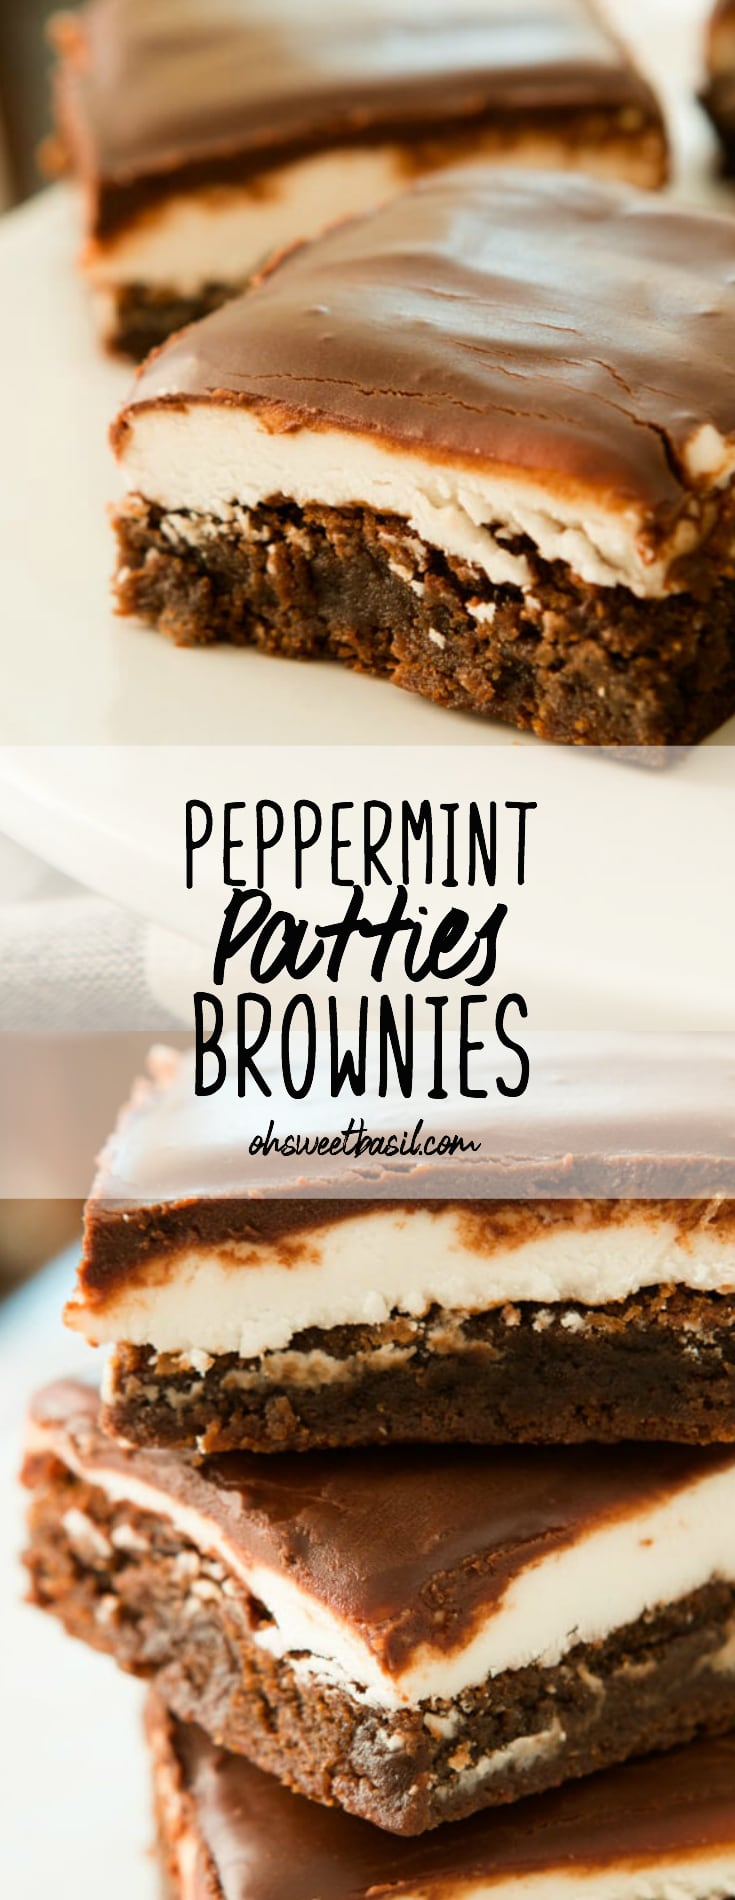 A stack of Peppermint Patties Brownies with a chocolate glaze